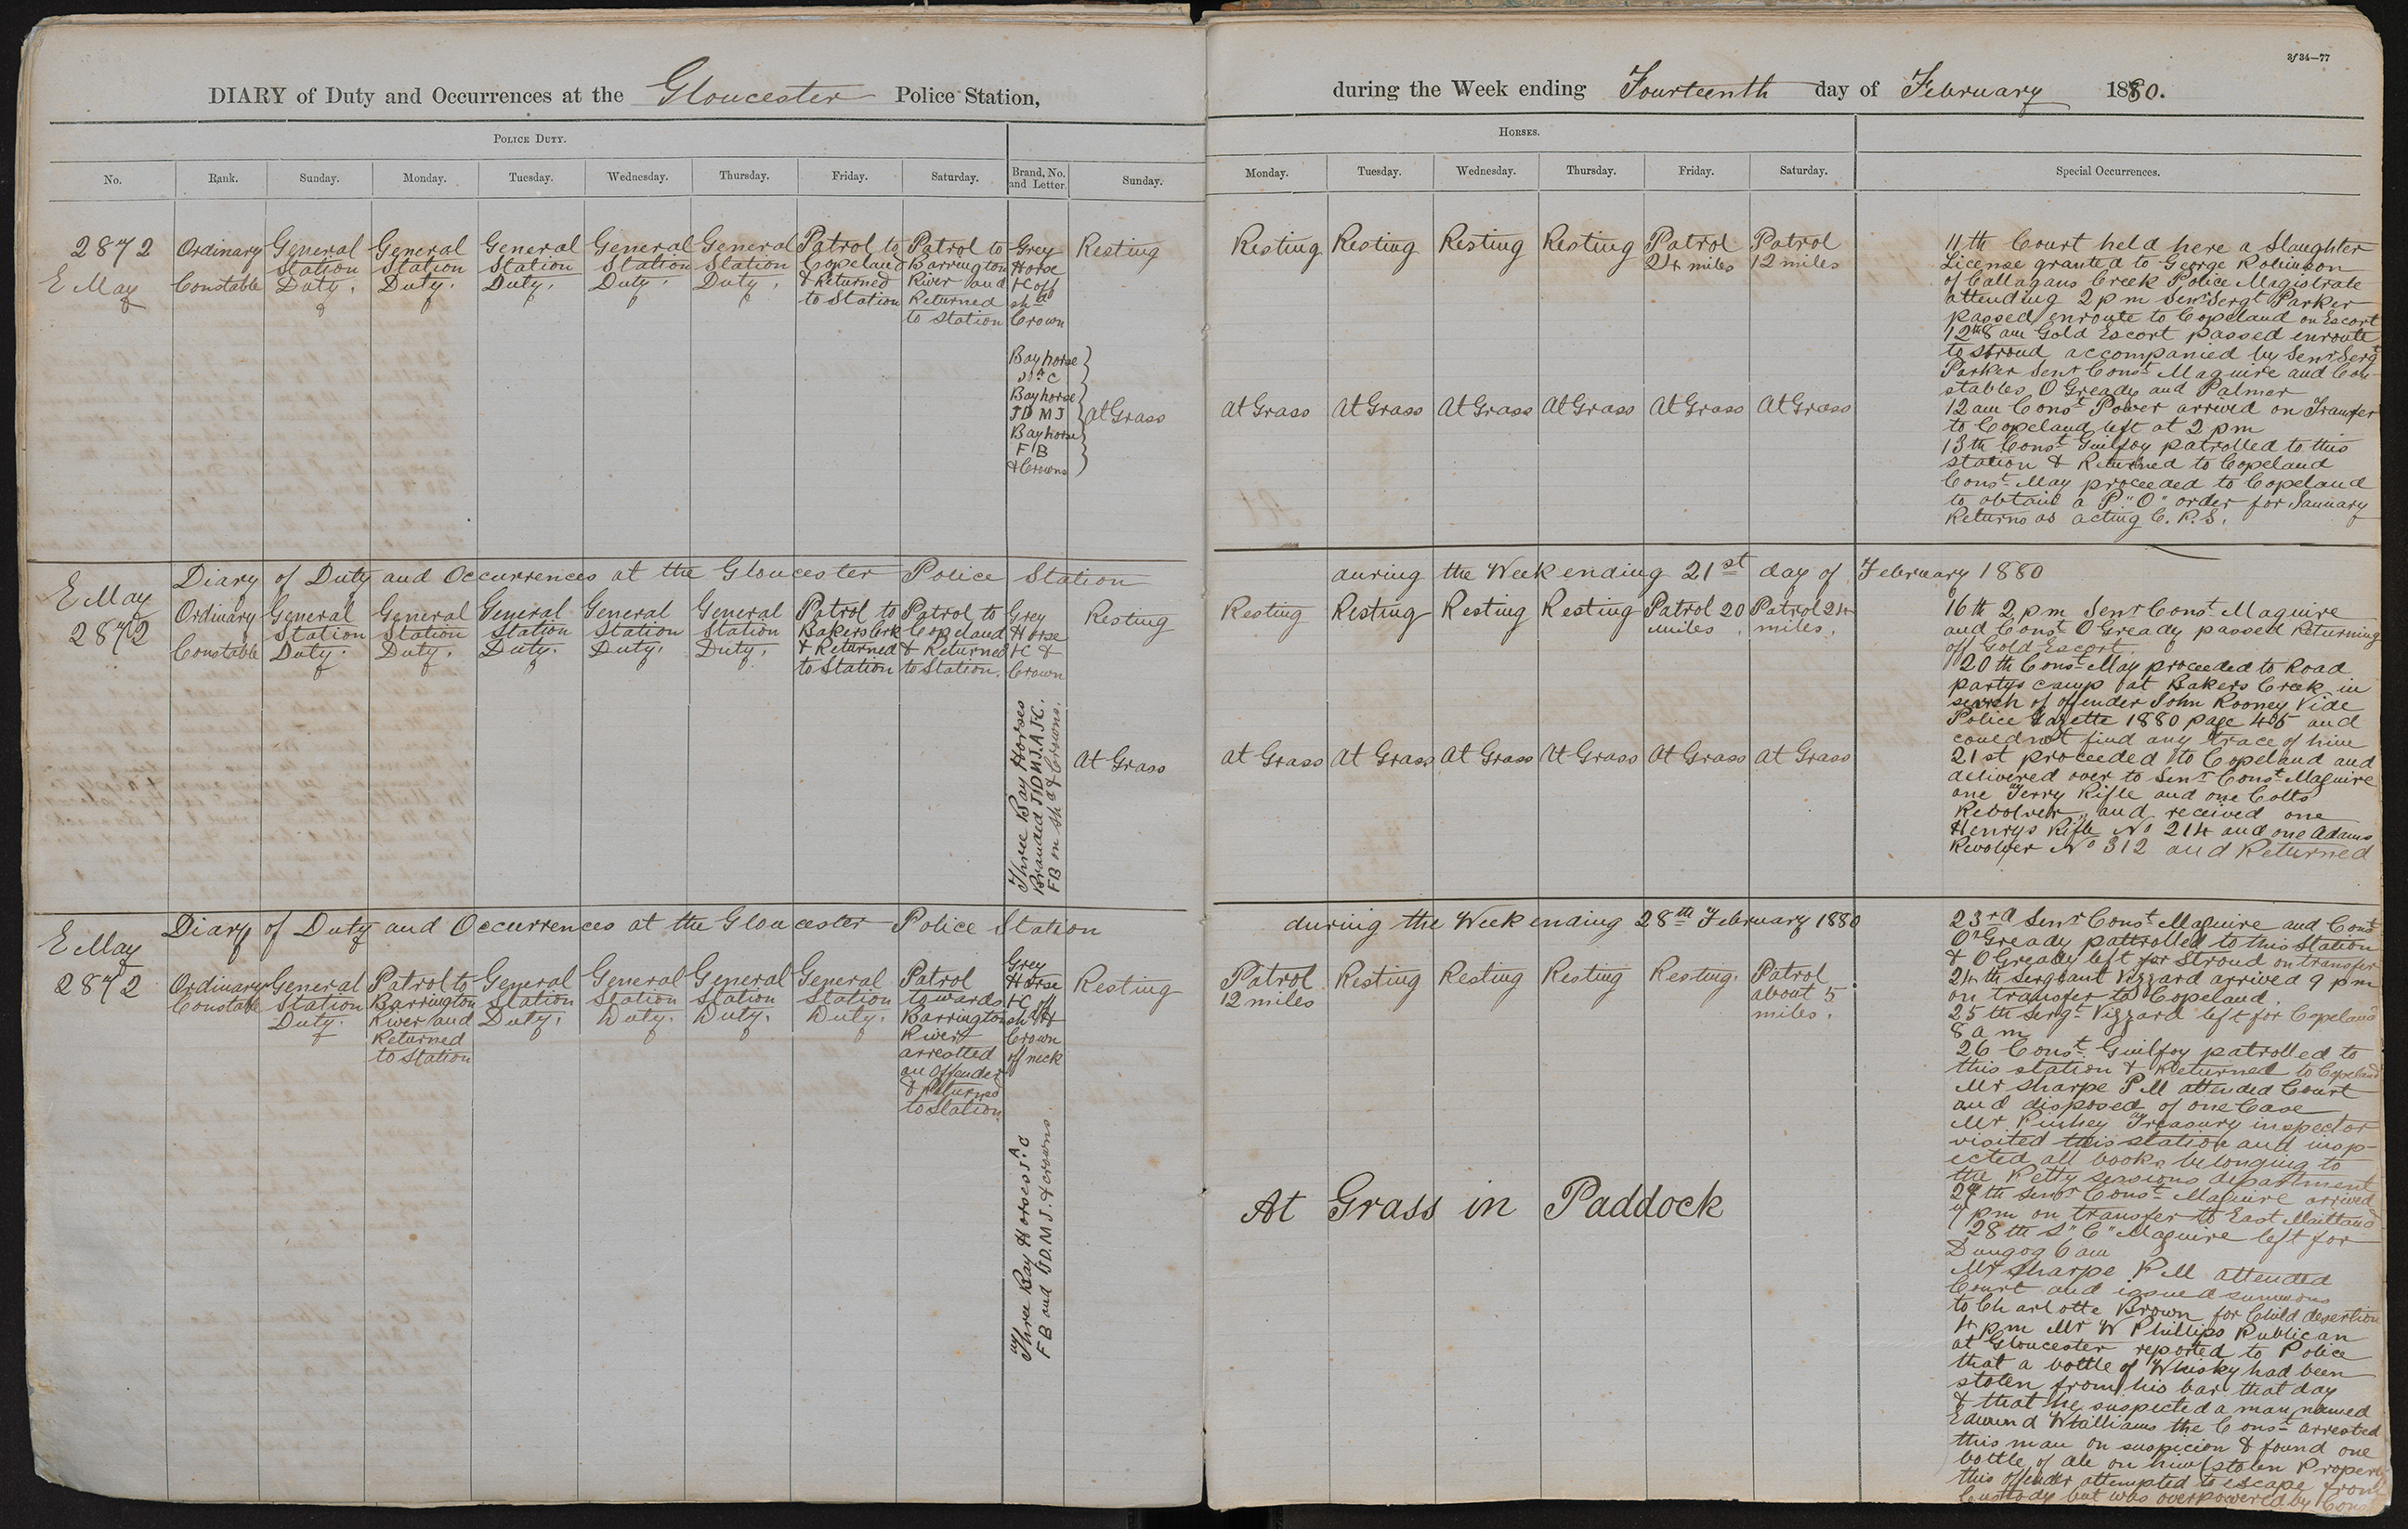 Diary of duty and occurrences at the Gloucester Police Station during the week ending the 14th day of February 1880